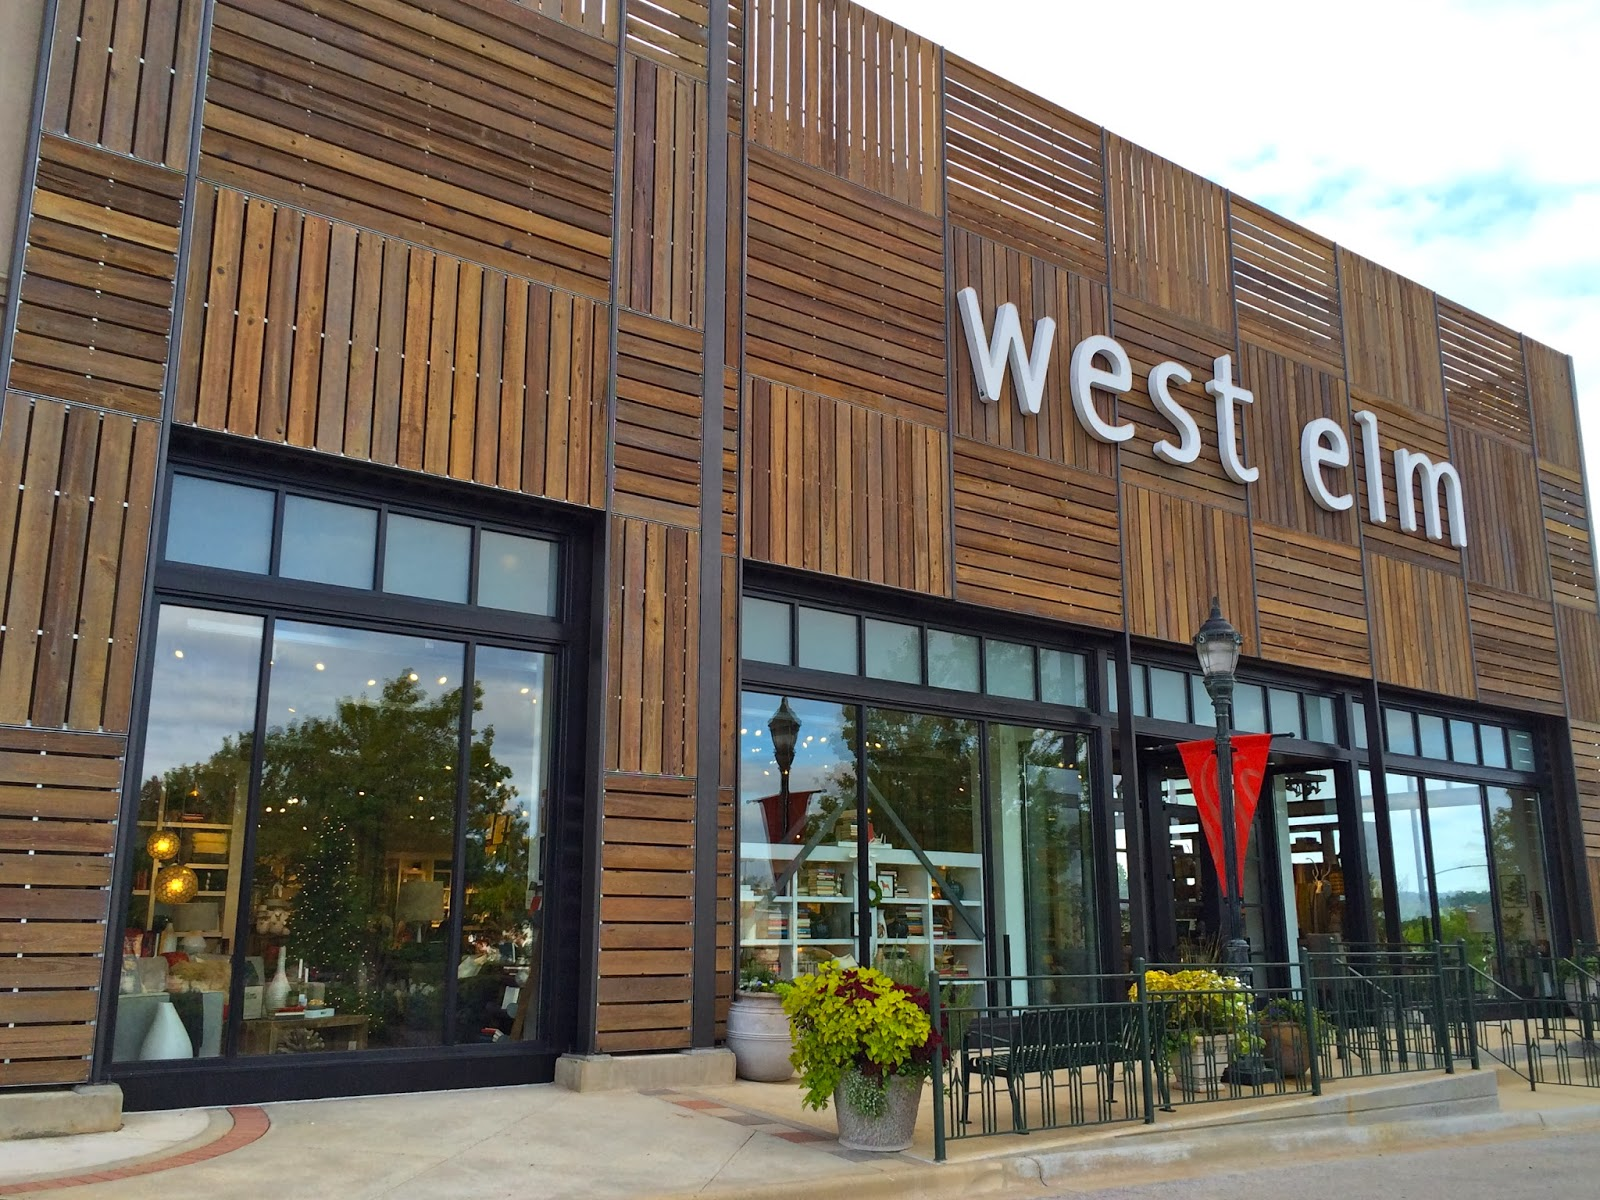 Grass Stains West Elm Opened In Birmingham